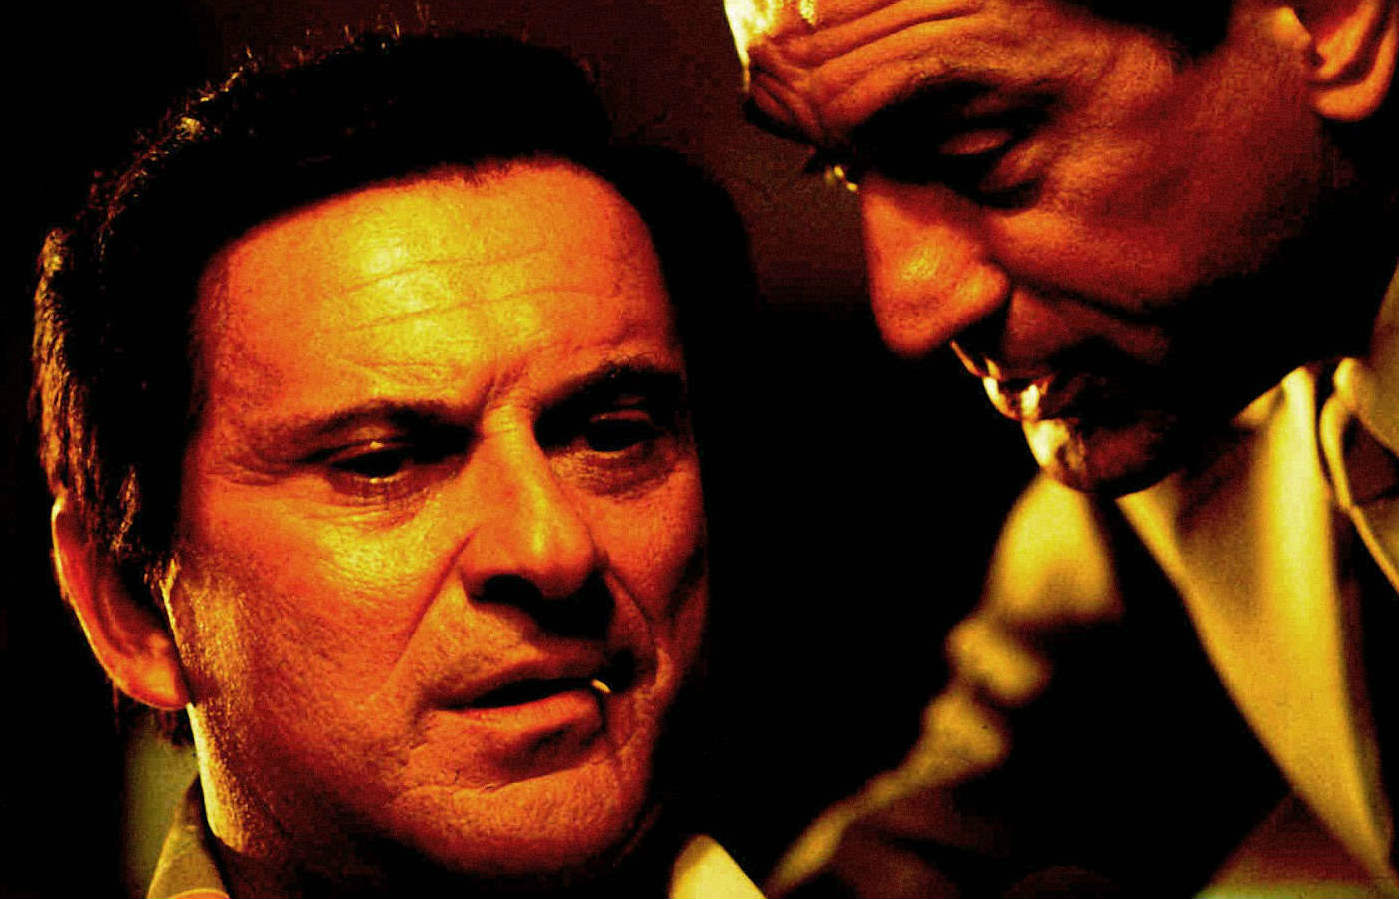 Joe Pesci Joins Martin Scorsese's Film The Irishman